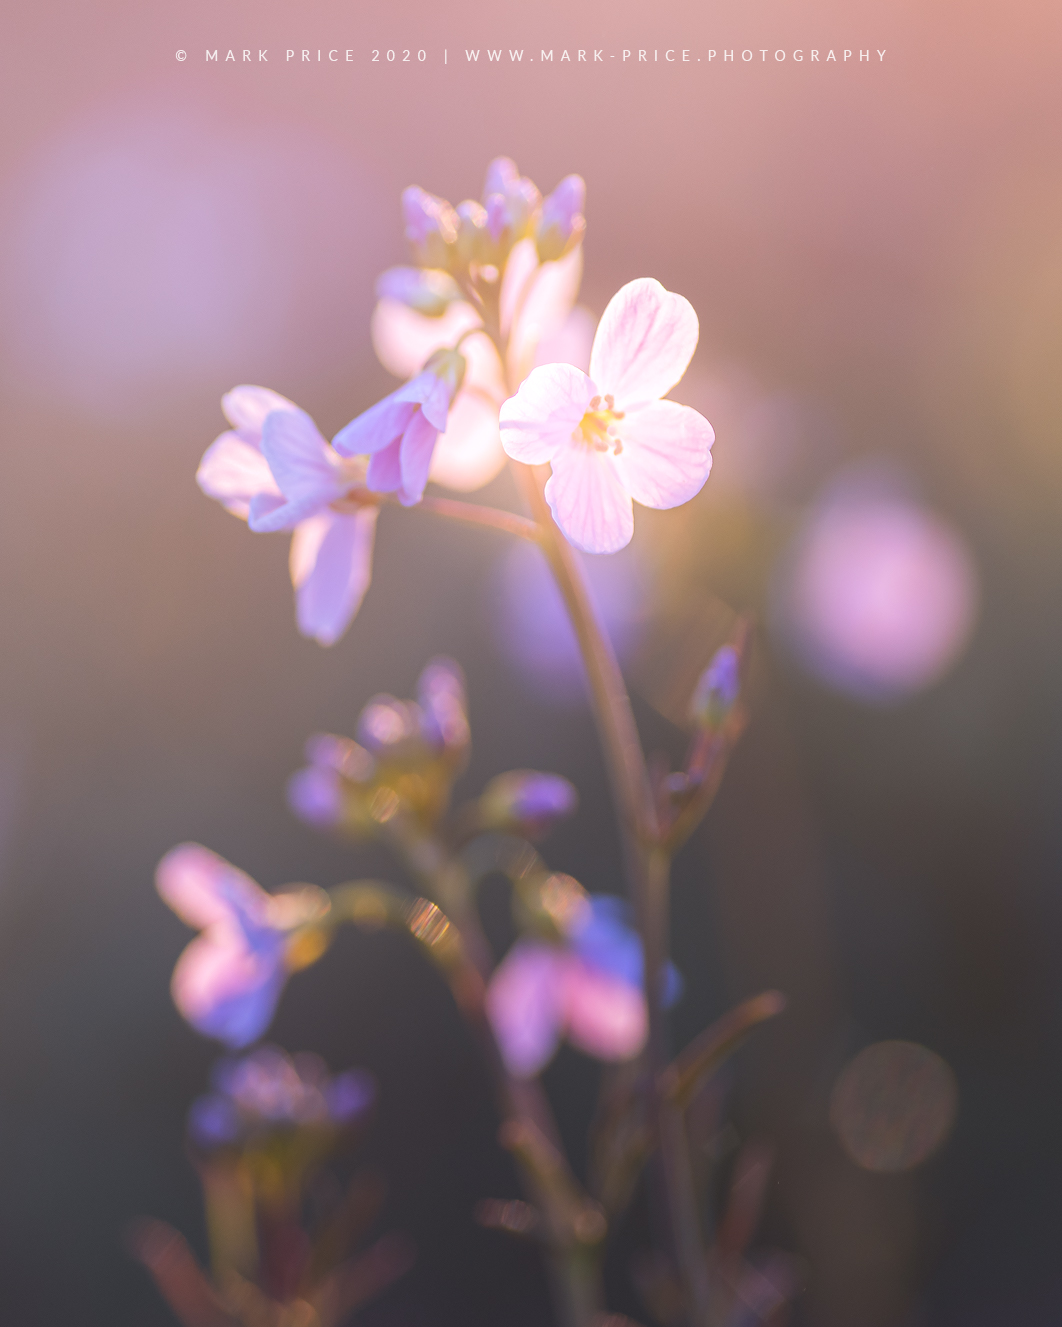 Lovely light illuminating this hedgerow plant in Sussex, England